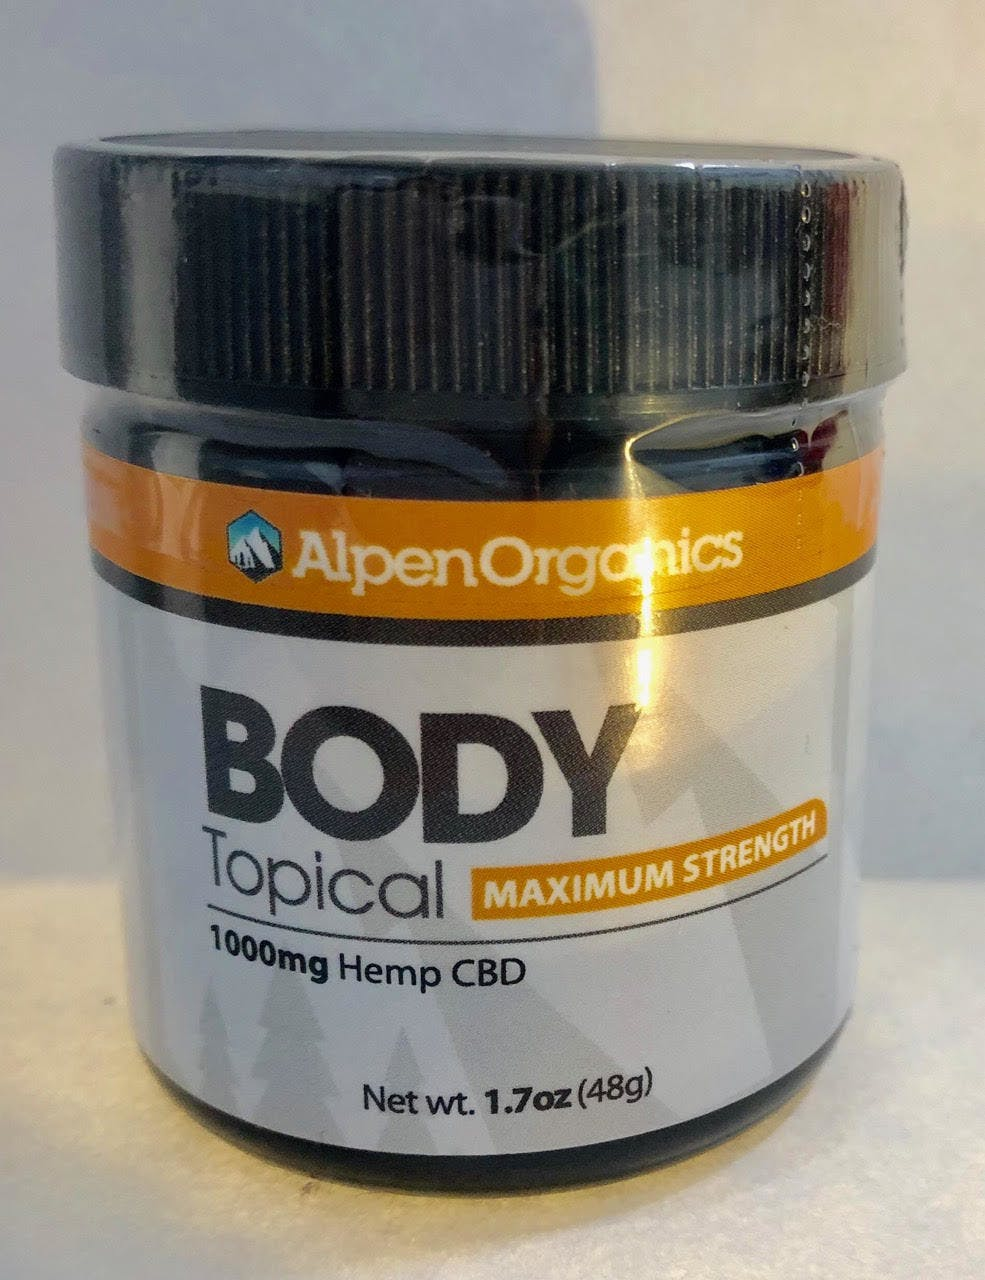 topicals-alpenorganics-body-topical-1000mg